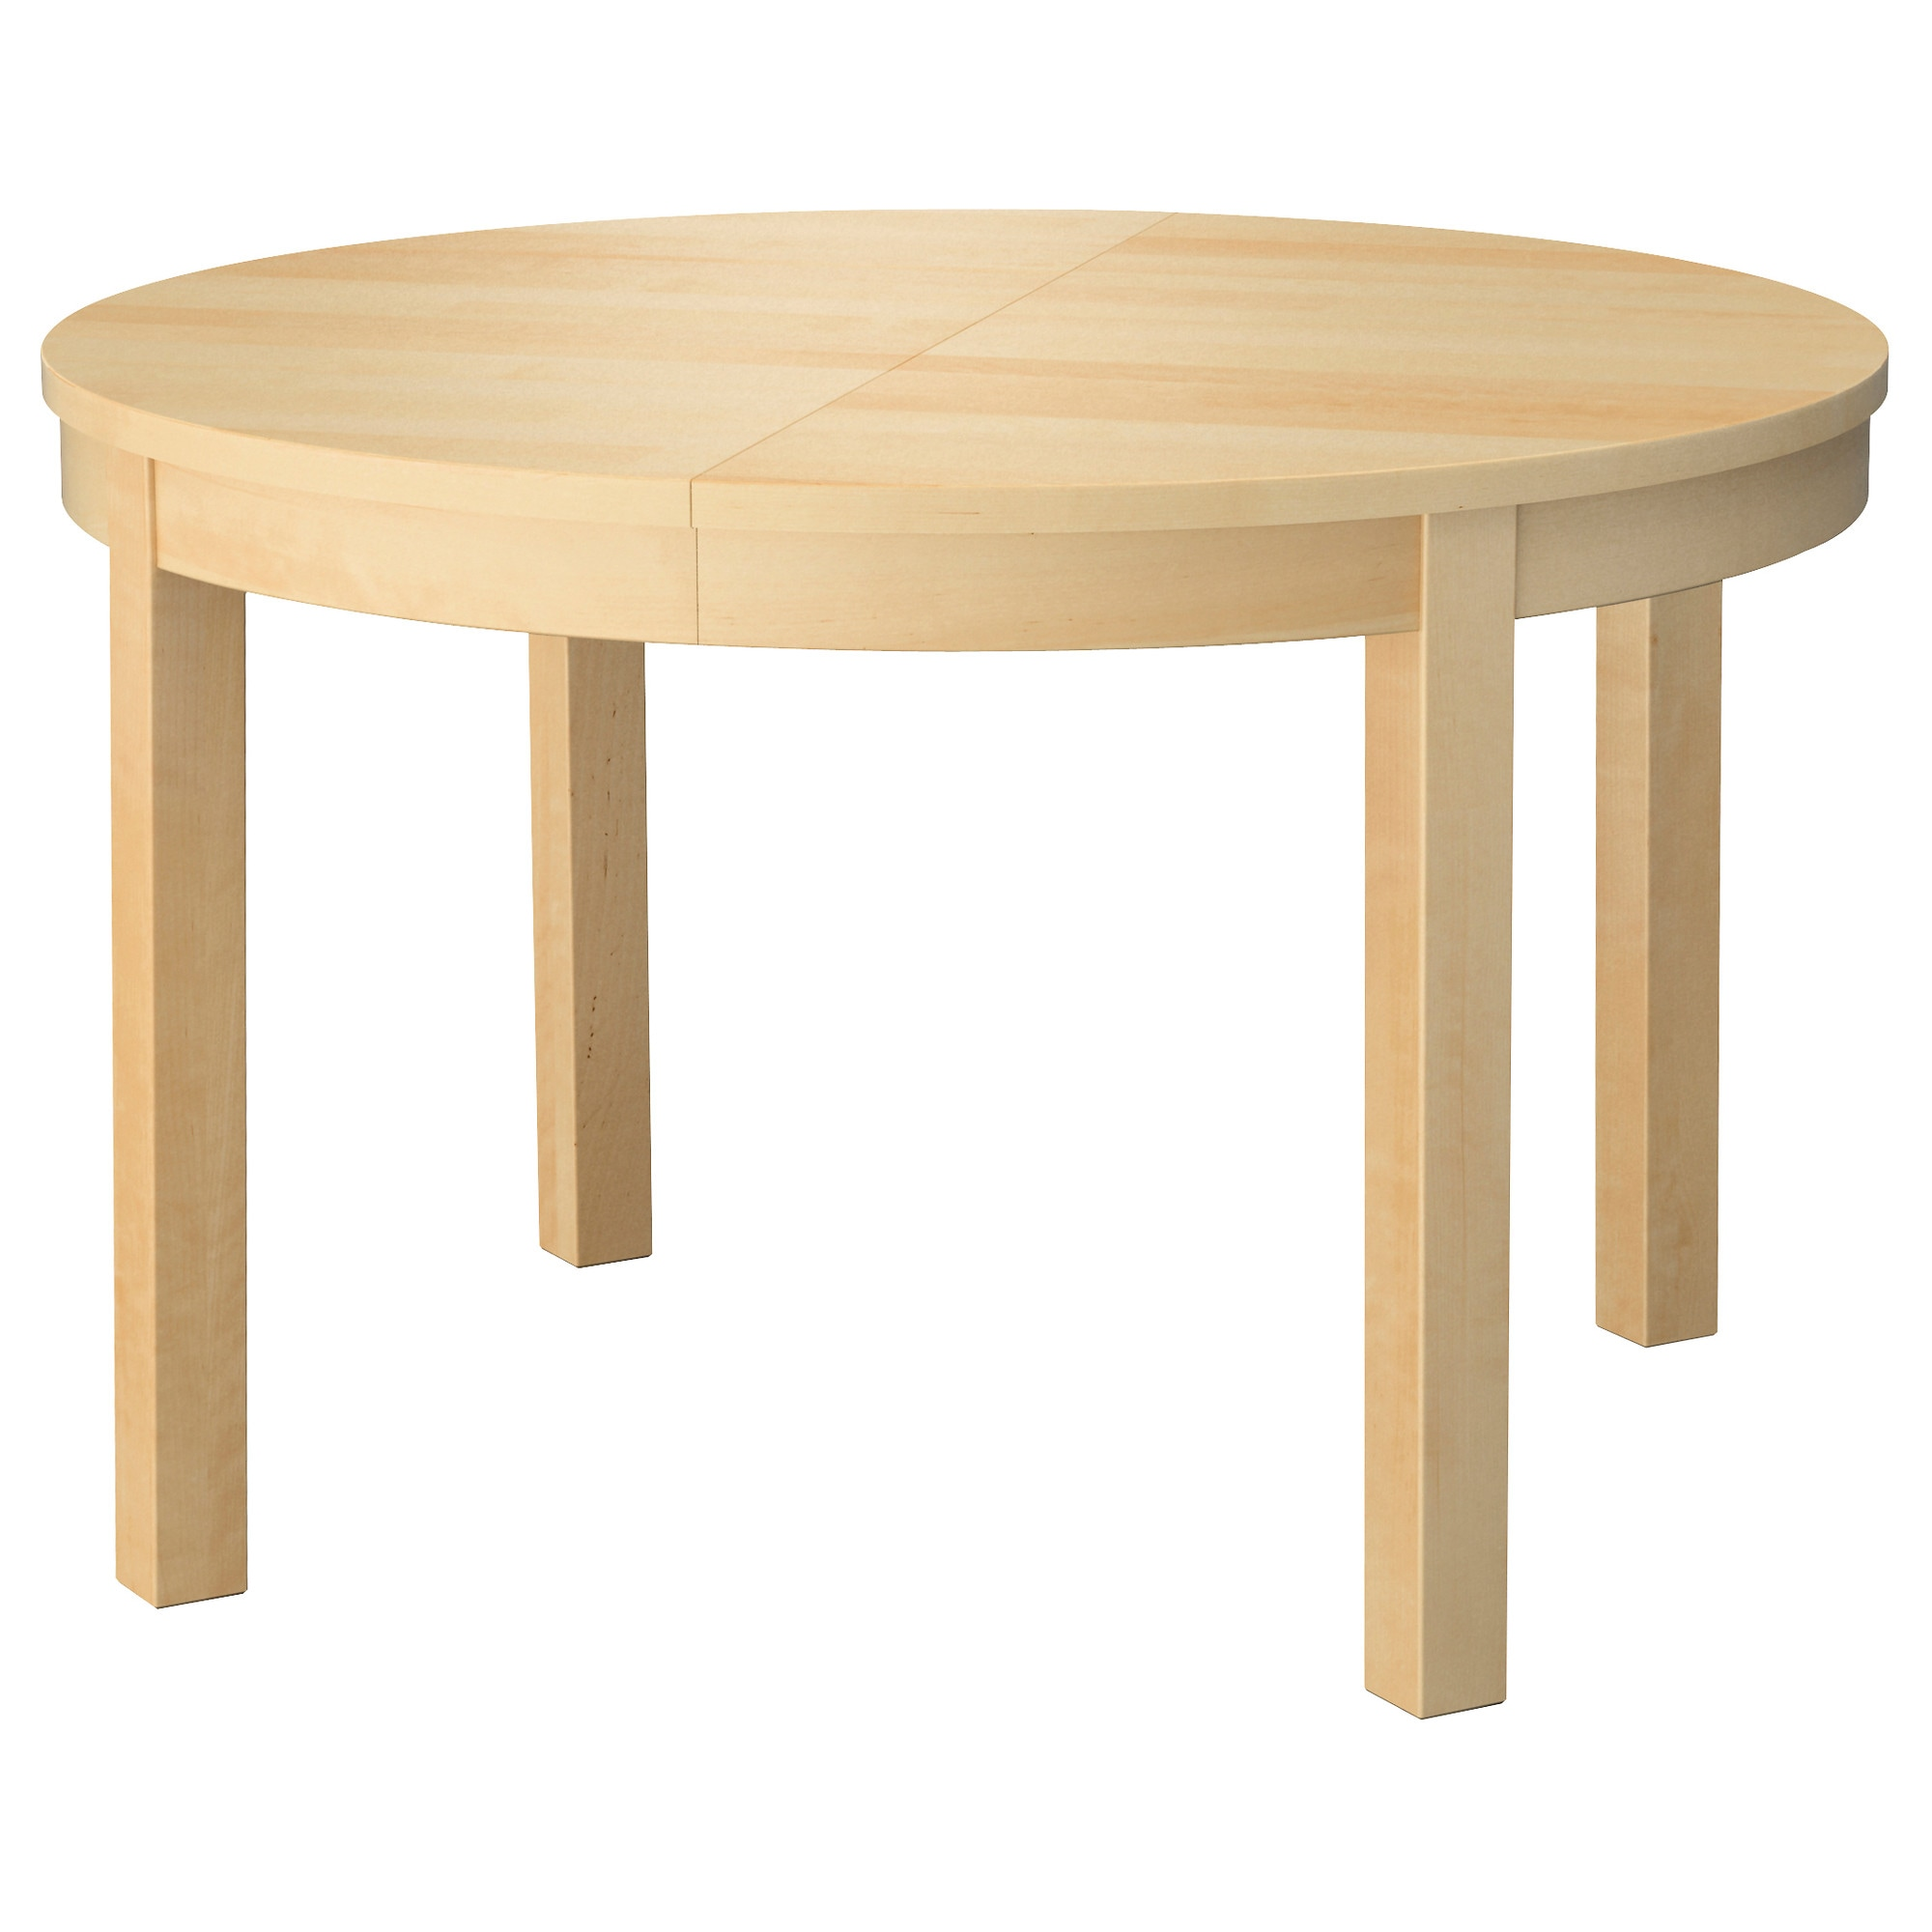 Table ronde ikea - Table ronde avec rallonge ikea ...